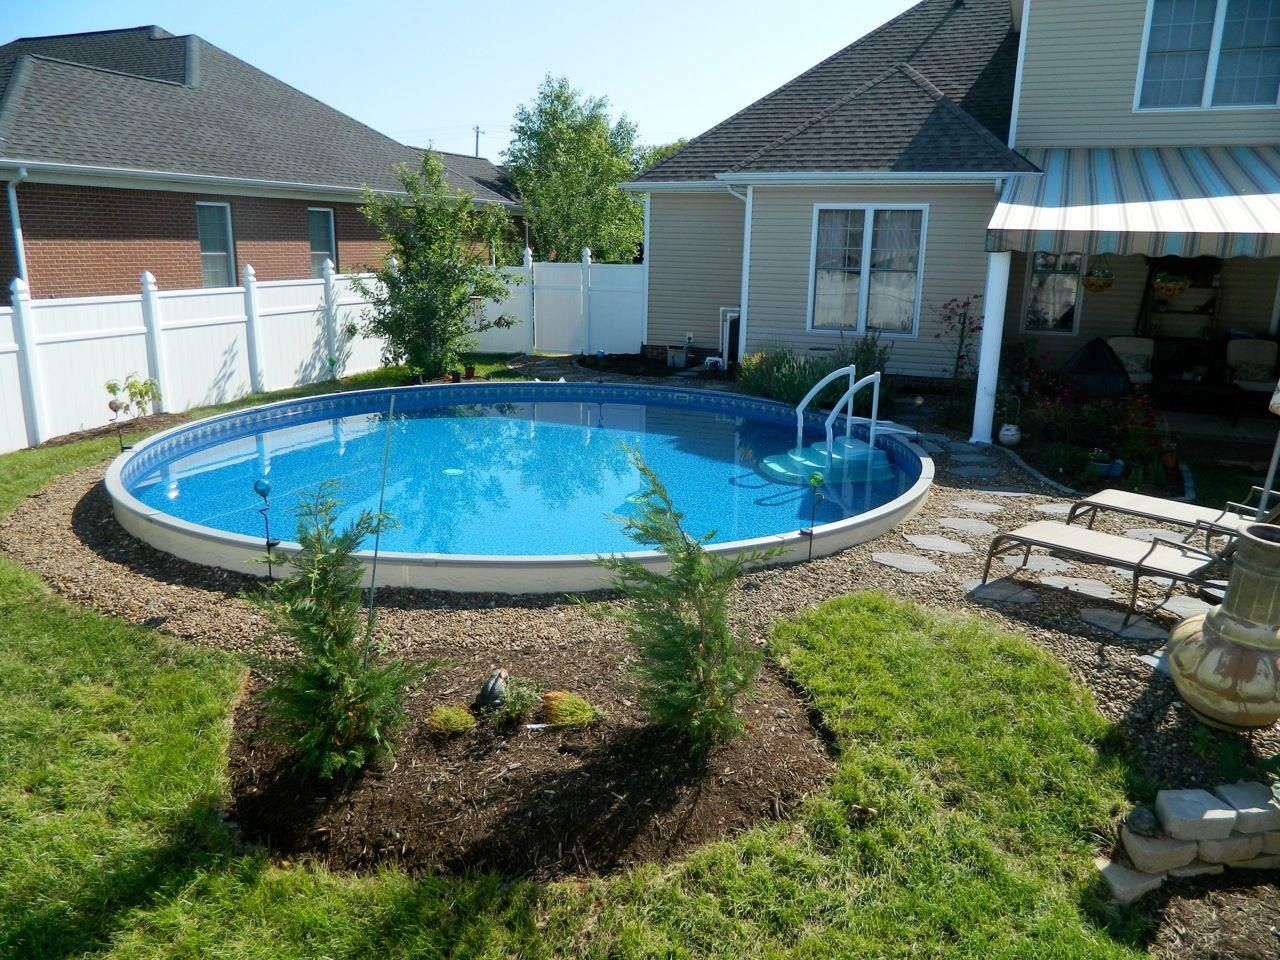 Above Ground Pool Ideas Above Ground Swimming Pool With Deck Above Ground Pool Maintenance Above Backyard Pool In Ground Pools Above Ground Pool Landscaping